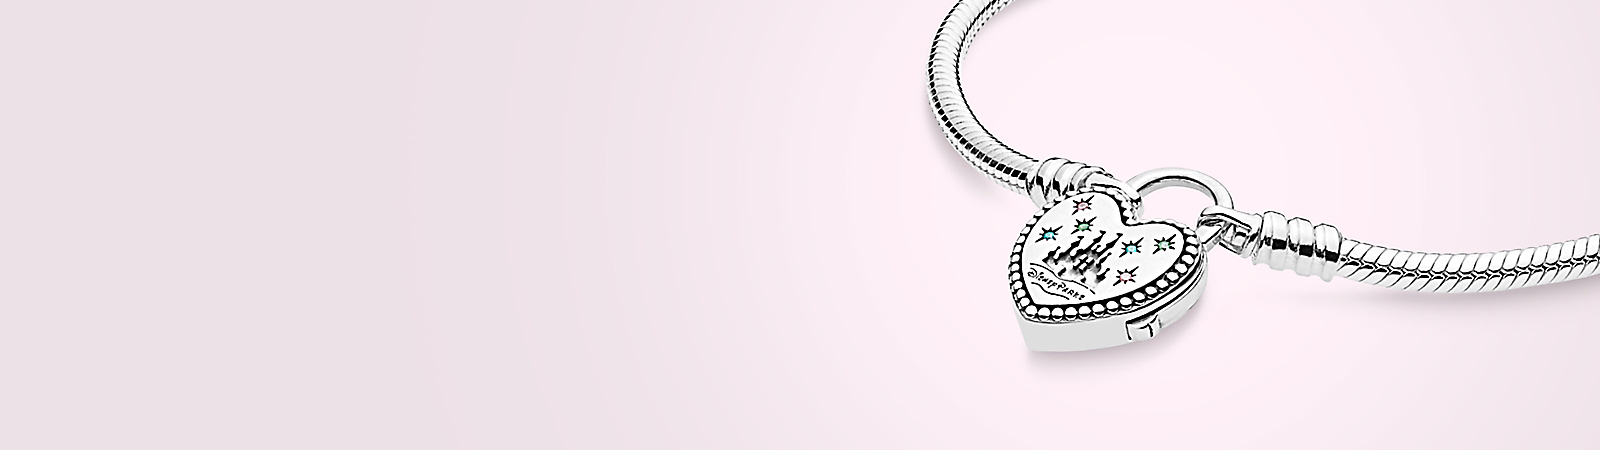 Background image of Pandora® Jewelry